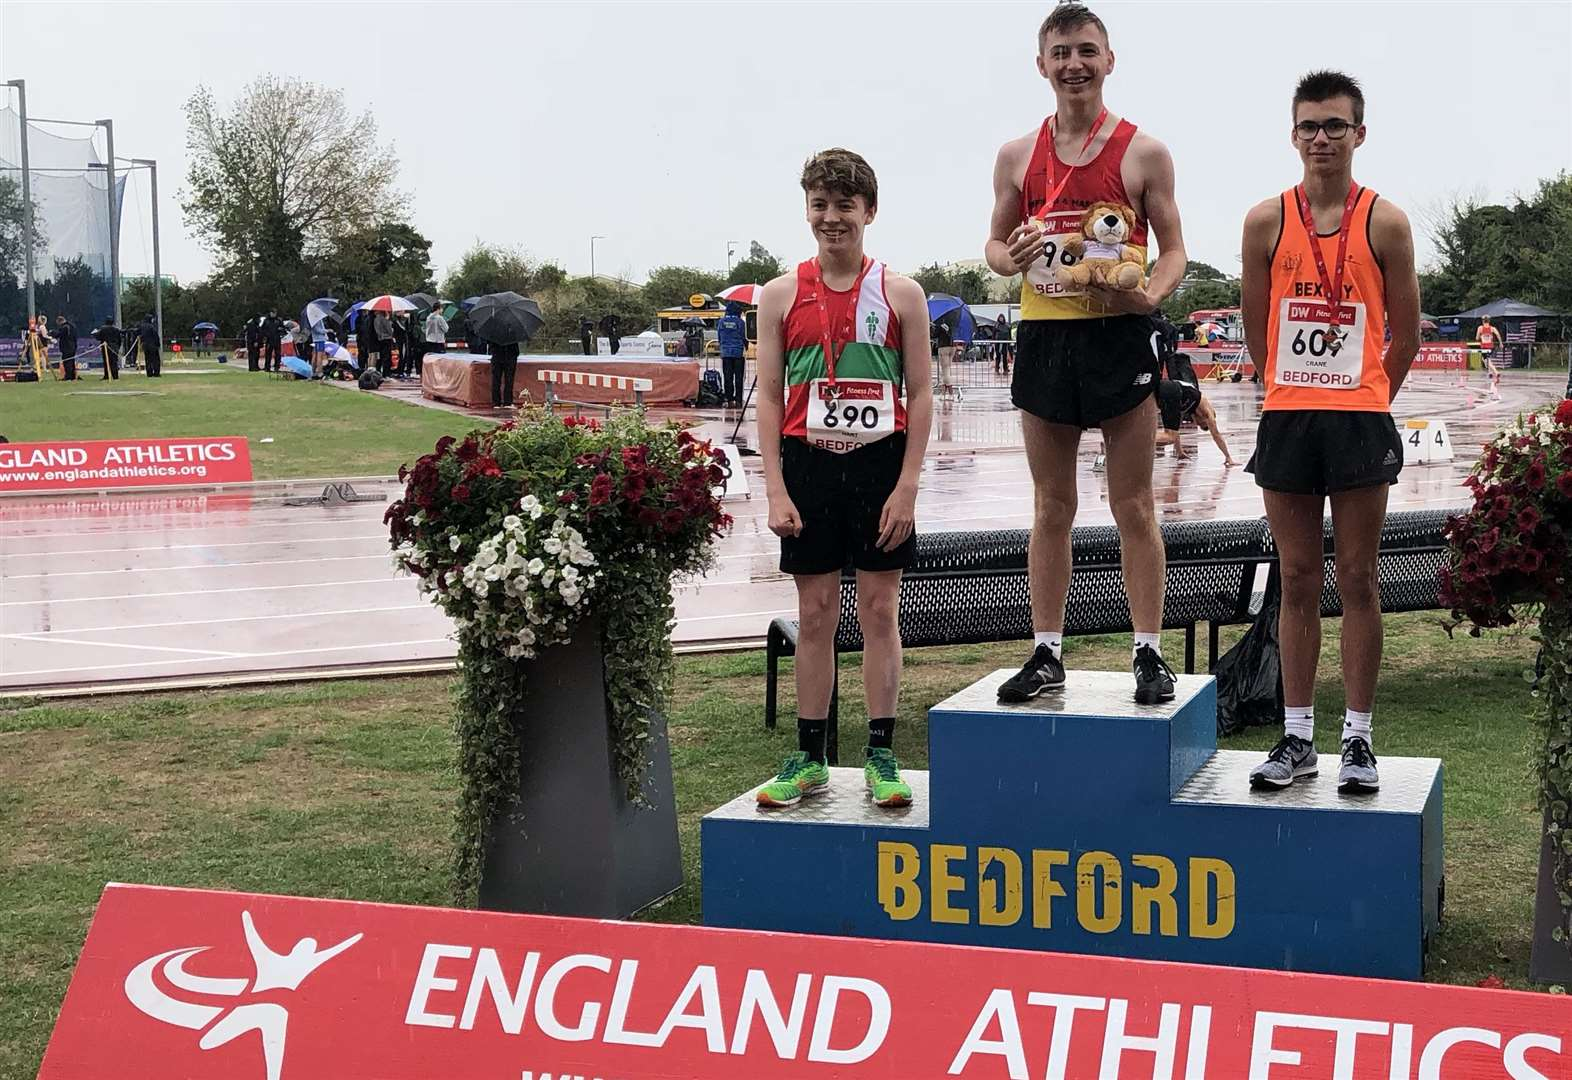 George Wilkinson claims English Schools title in new PB